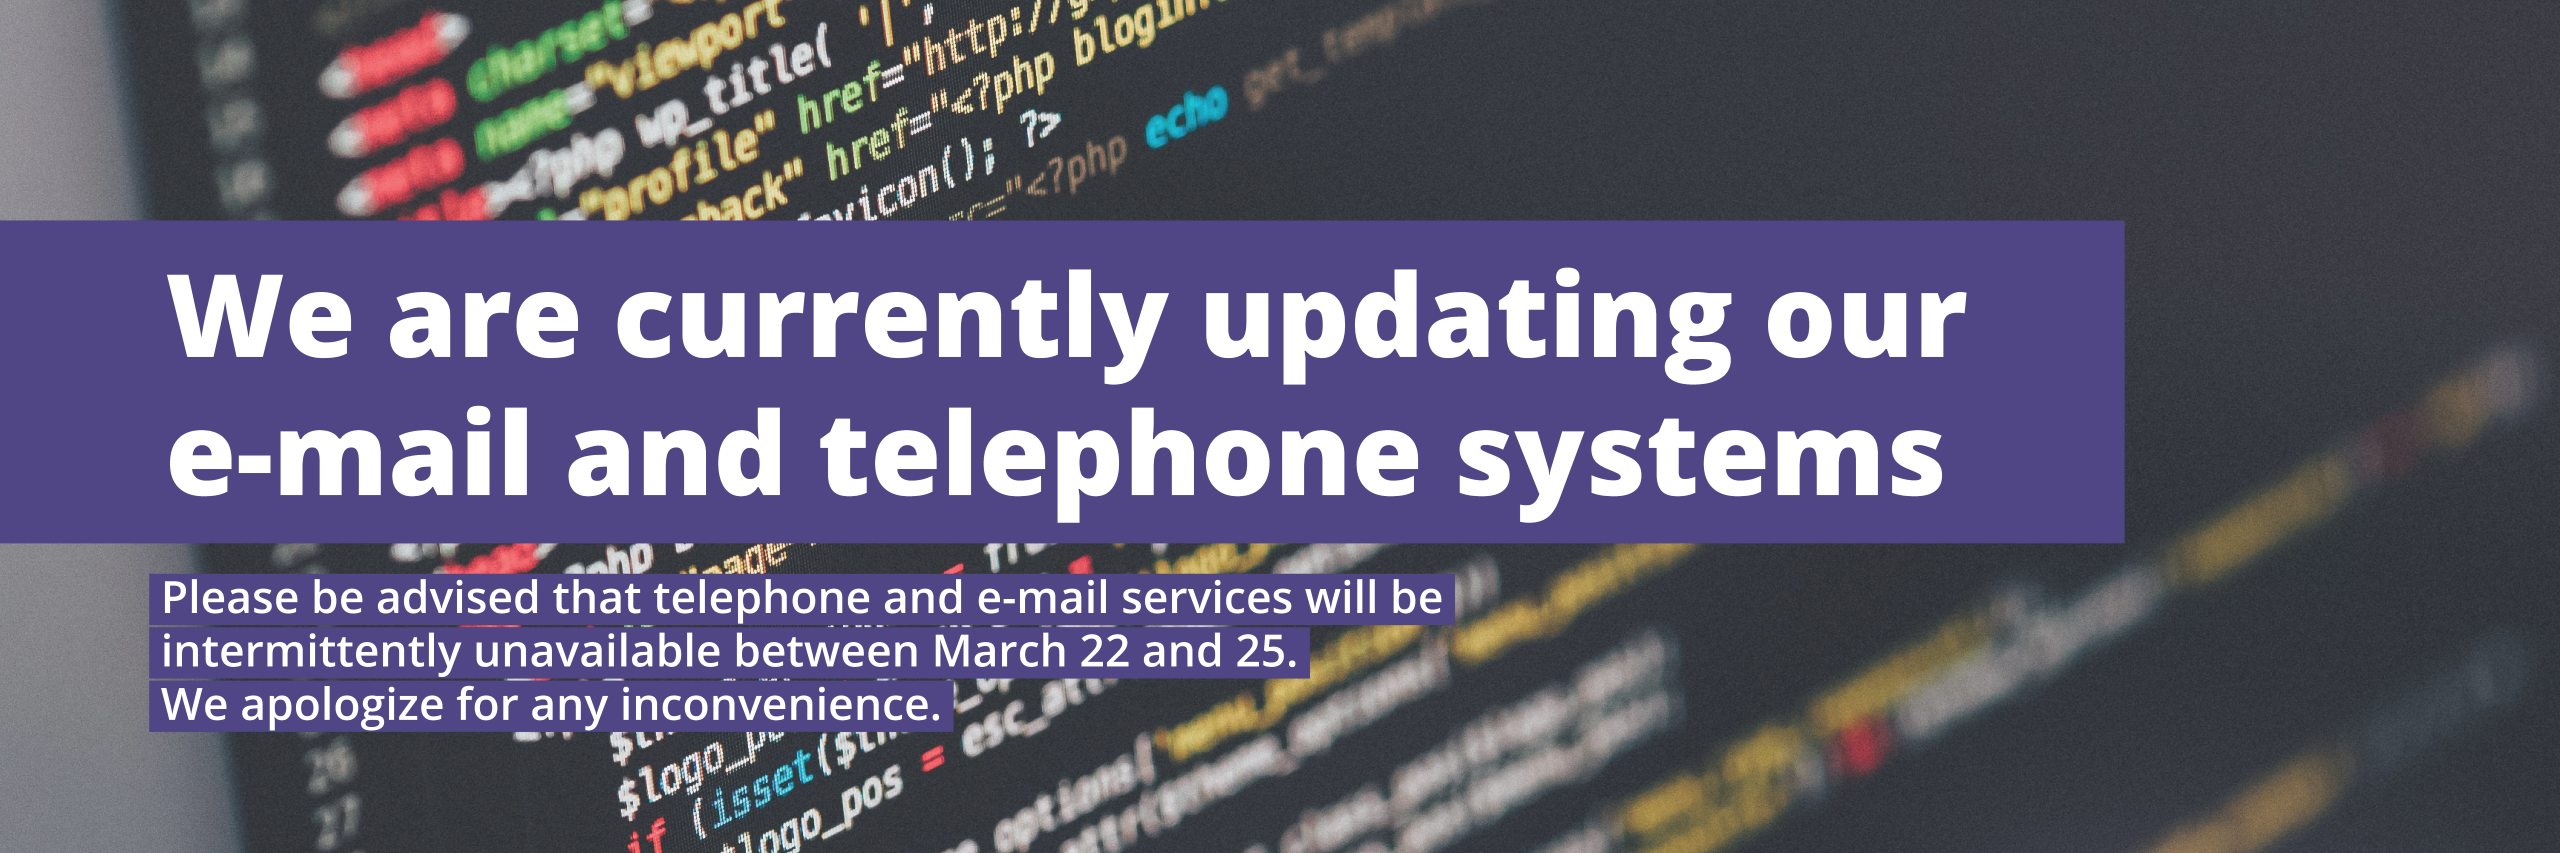 We are currently updating our e-mail and telephone systems